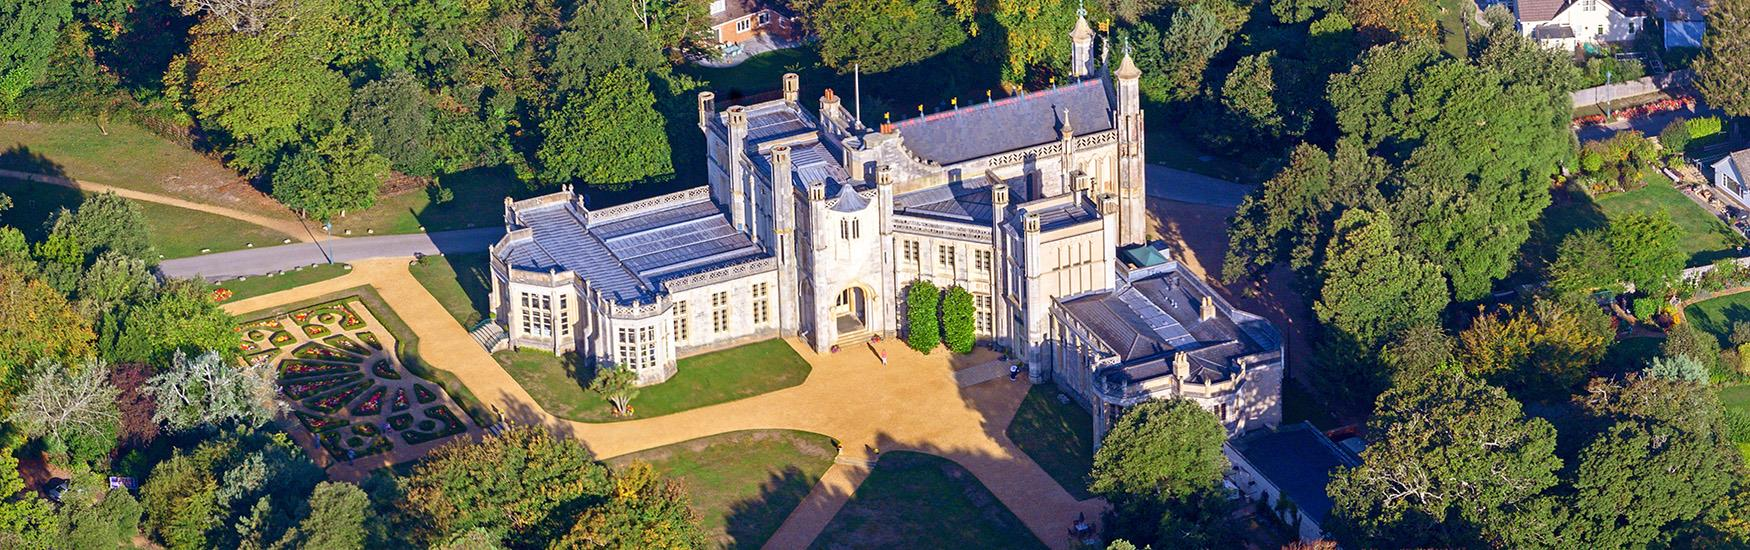 Stunning aerial shot of Highcliffe castle illuminated by the warm sun